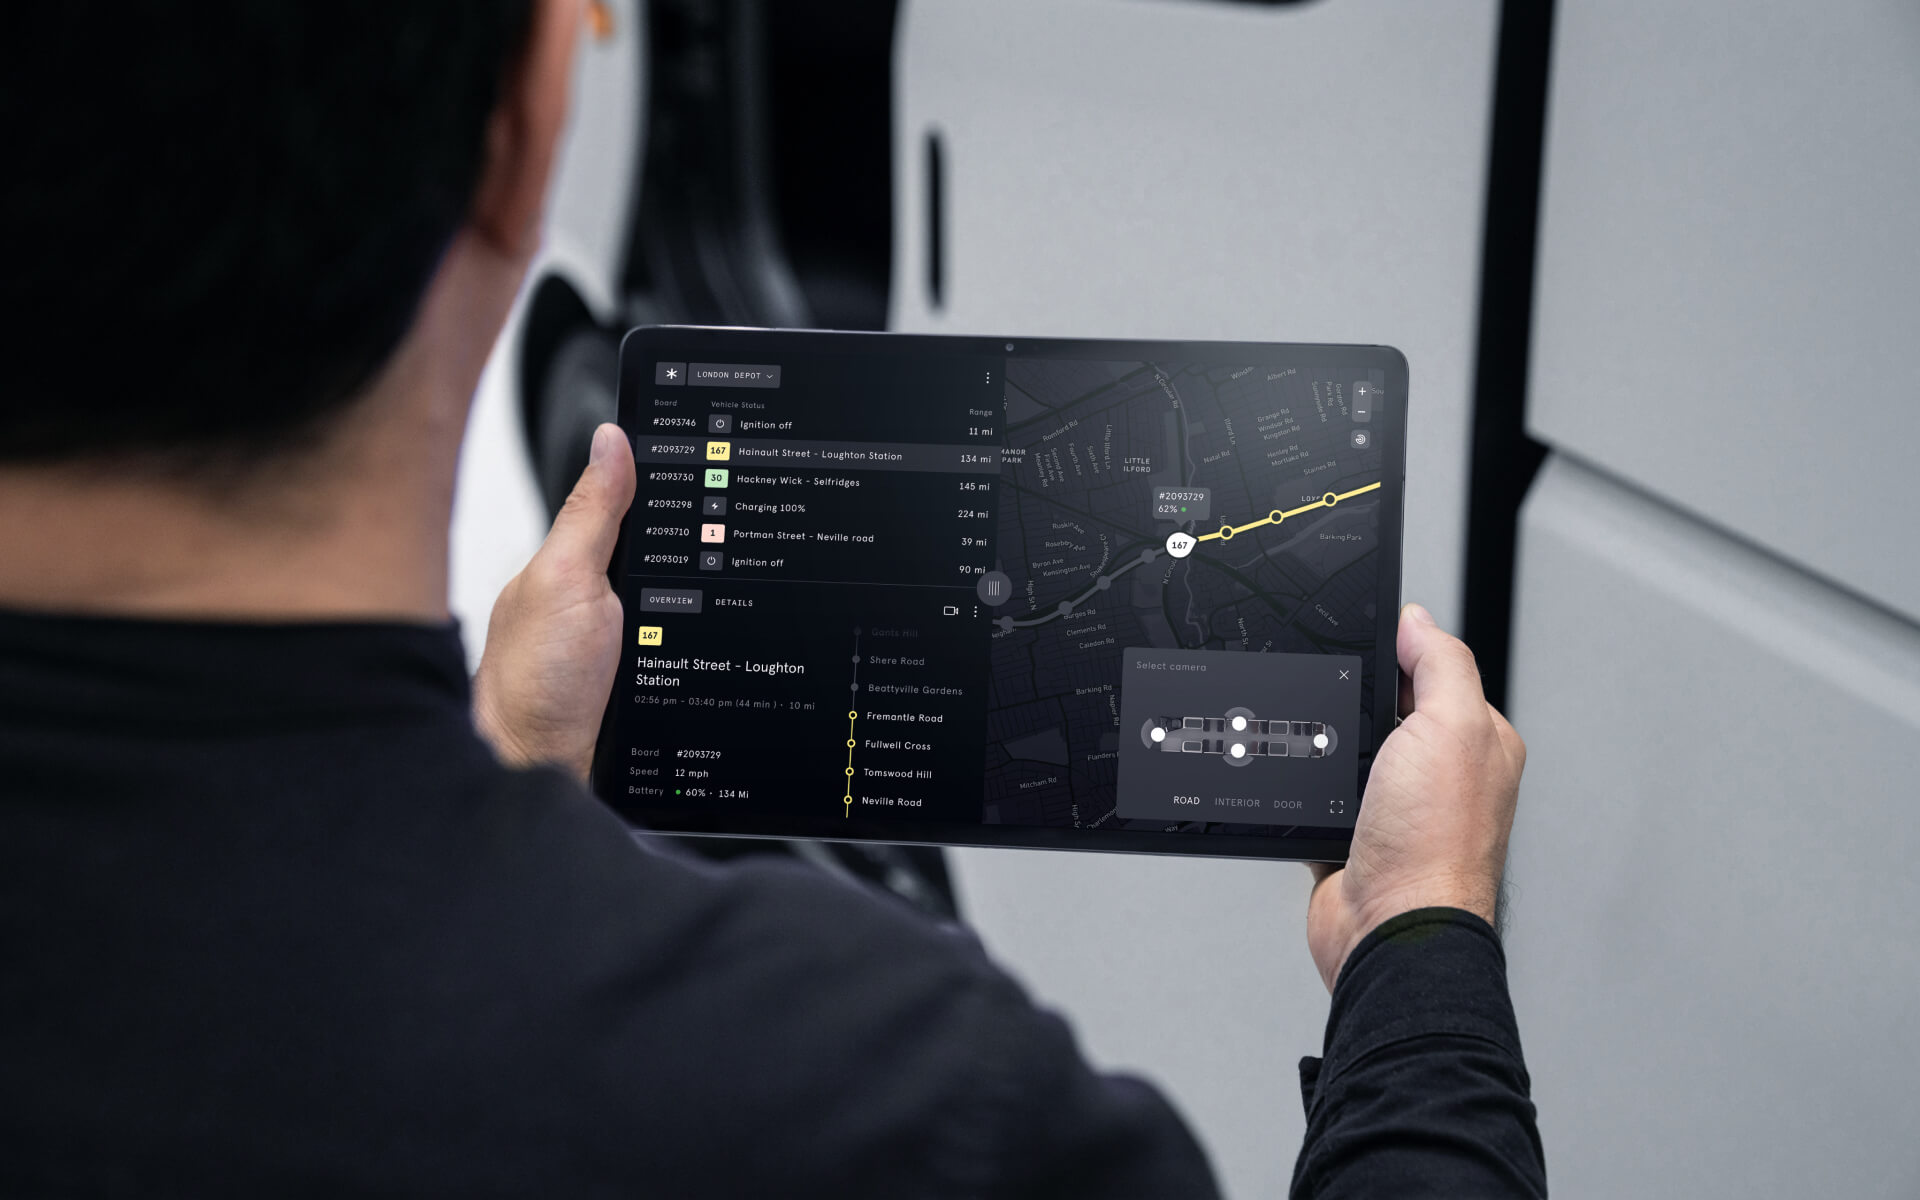 Tablet with digital product display